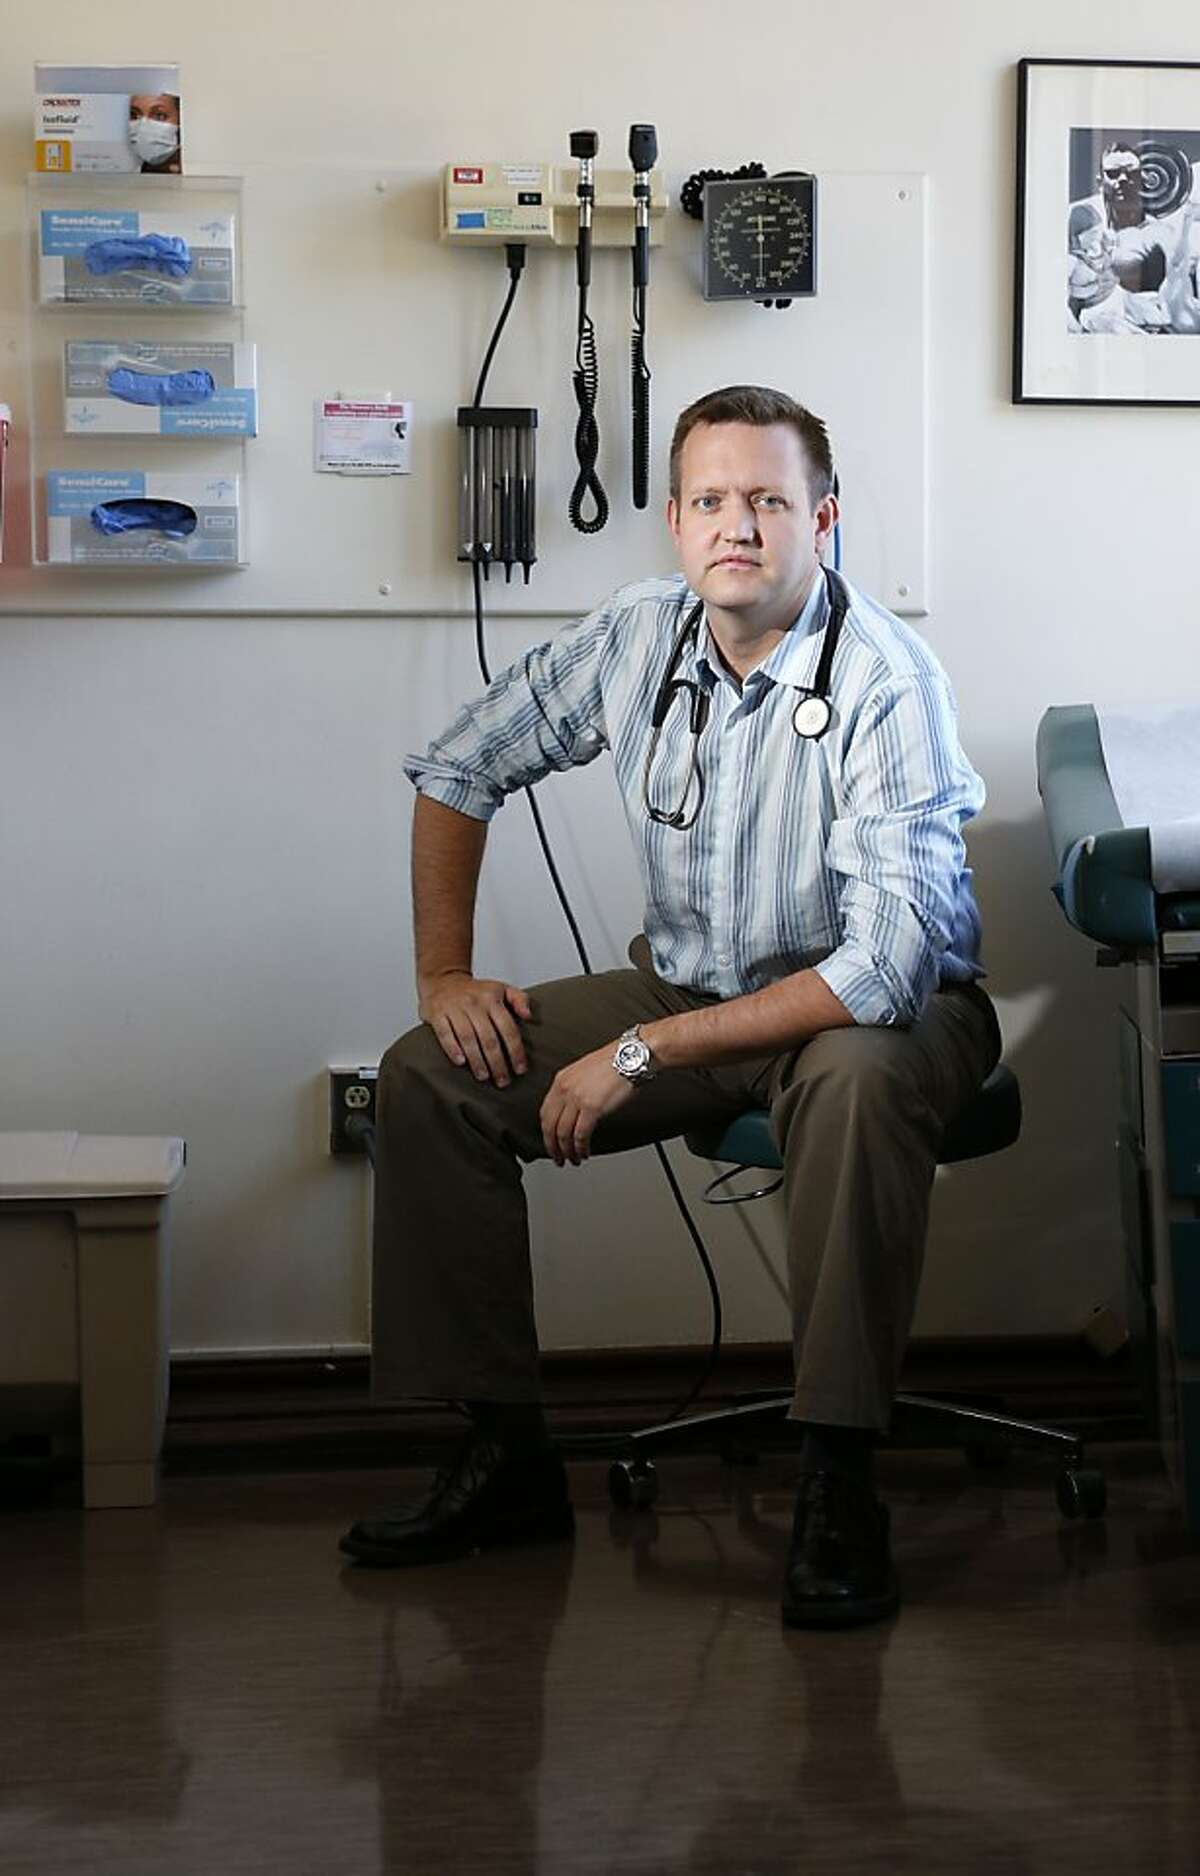 Medical Director of the HIV Clinic at San Francisco General Hospital, Dr. Brad Hare, photographed on Friday, September 7, 2012 in San Francisco, Calif.